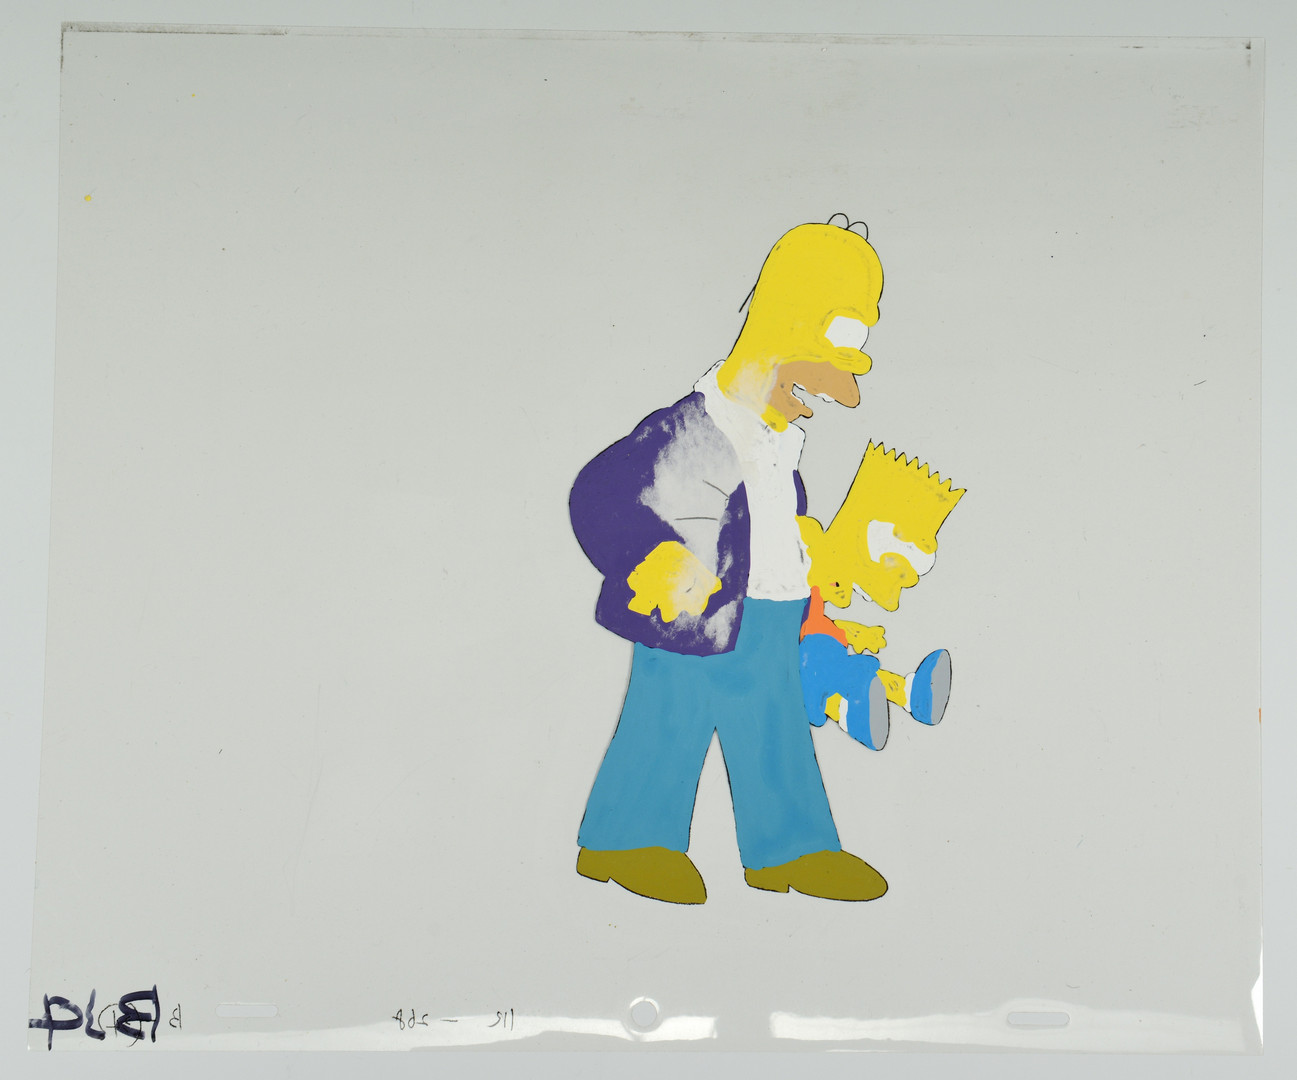 Lot 738: The Simpsons Animation Cel, Homer & Bart